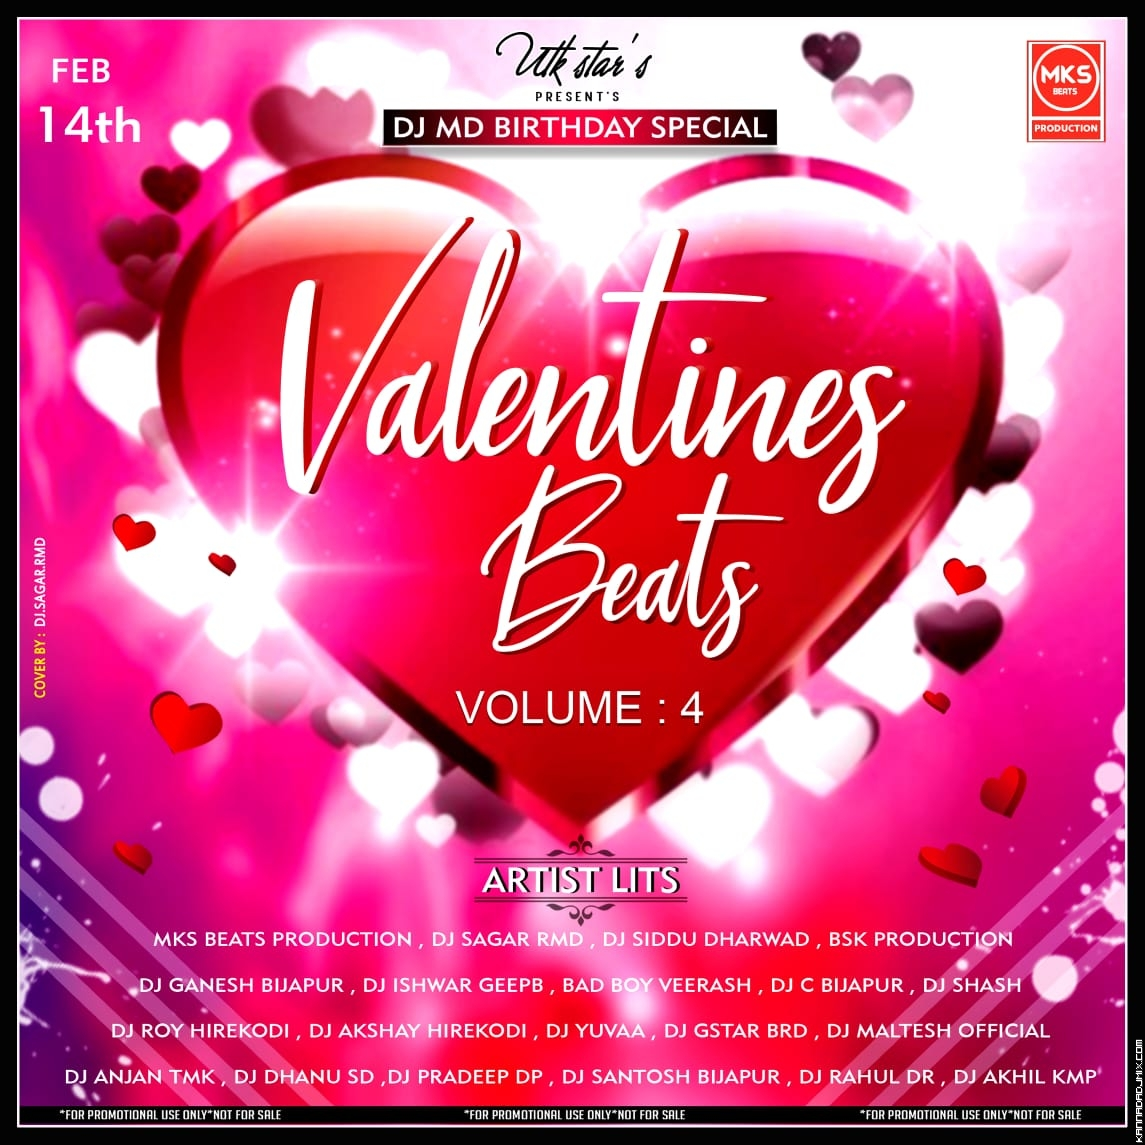 25-YA ALI FEMALE LOVE REMIX -DJ SAGAR RMD x DJ GANESH BIJAPUR.mp3